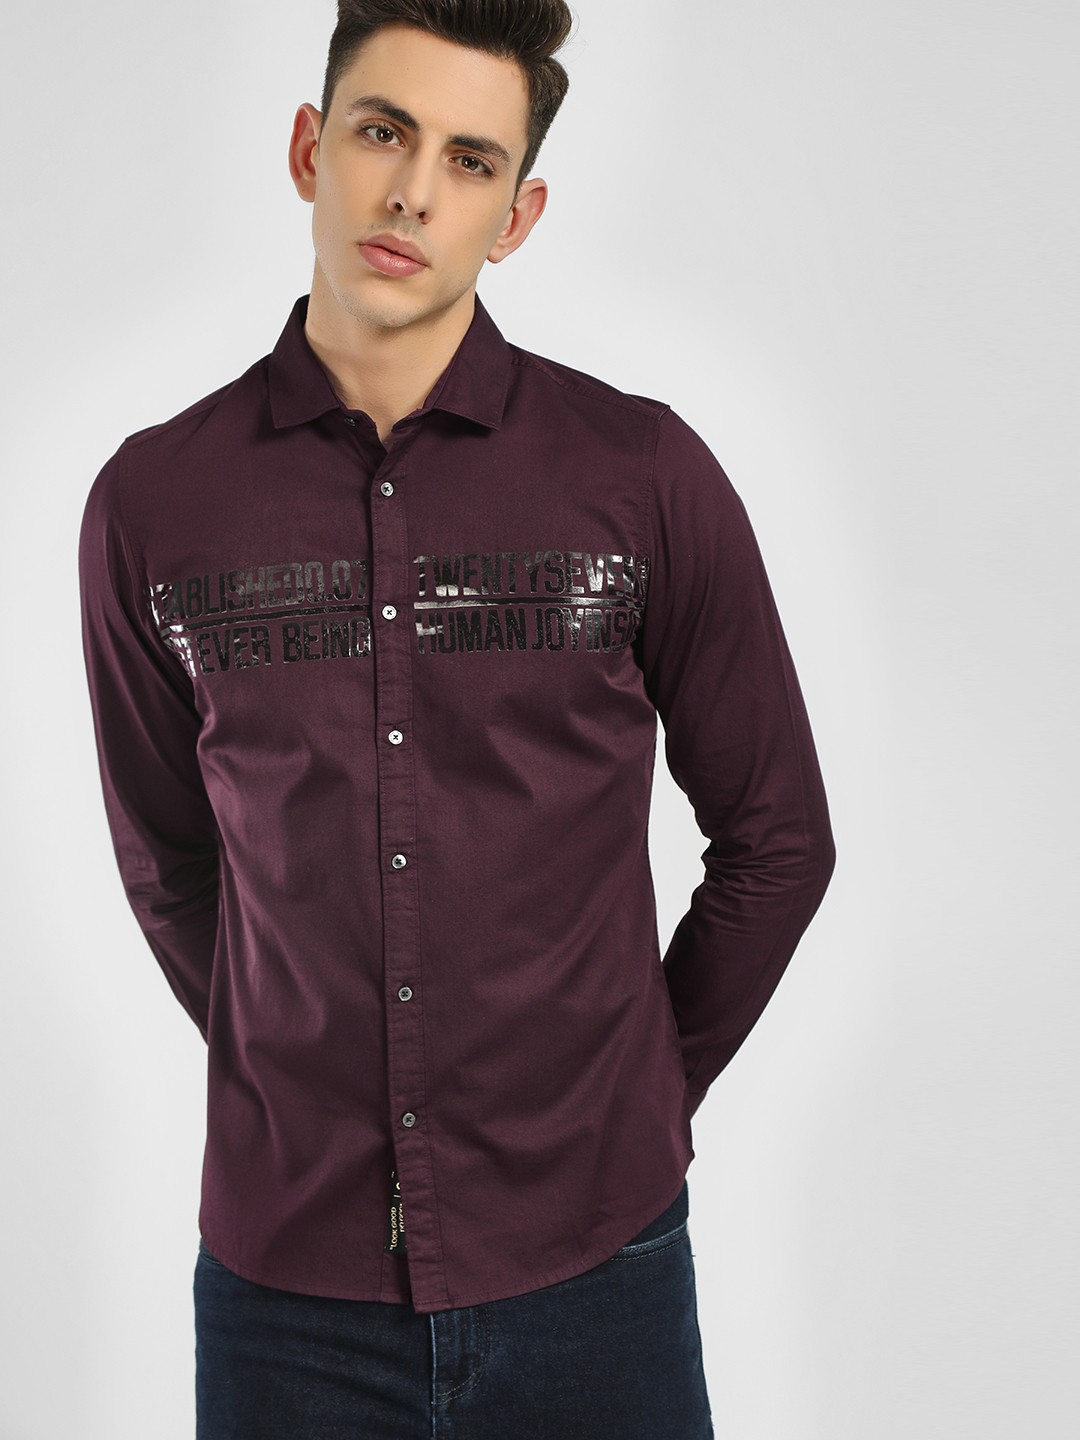 Being Human Maroon Text Embossed Long Sleeve Shirt 1